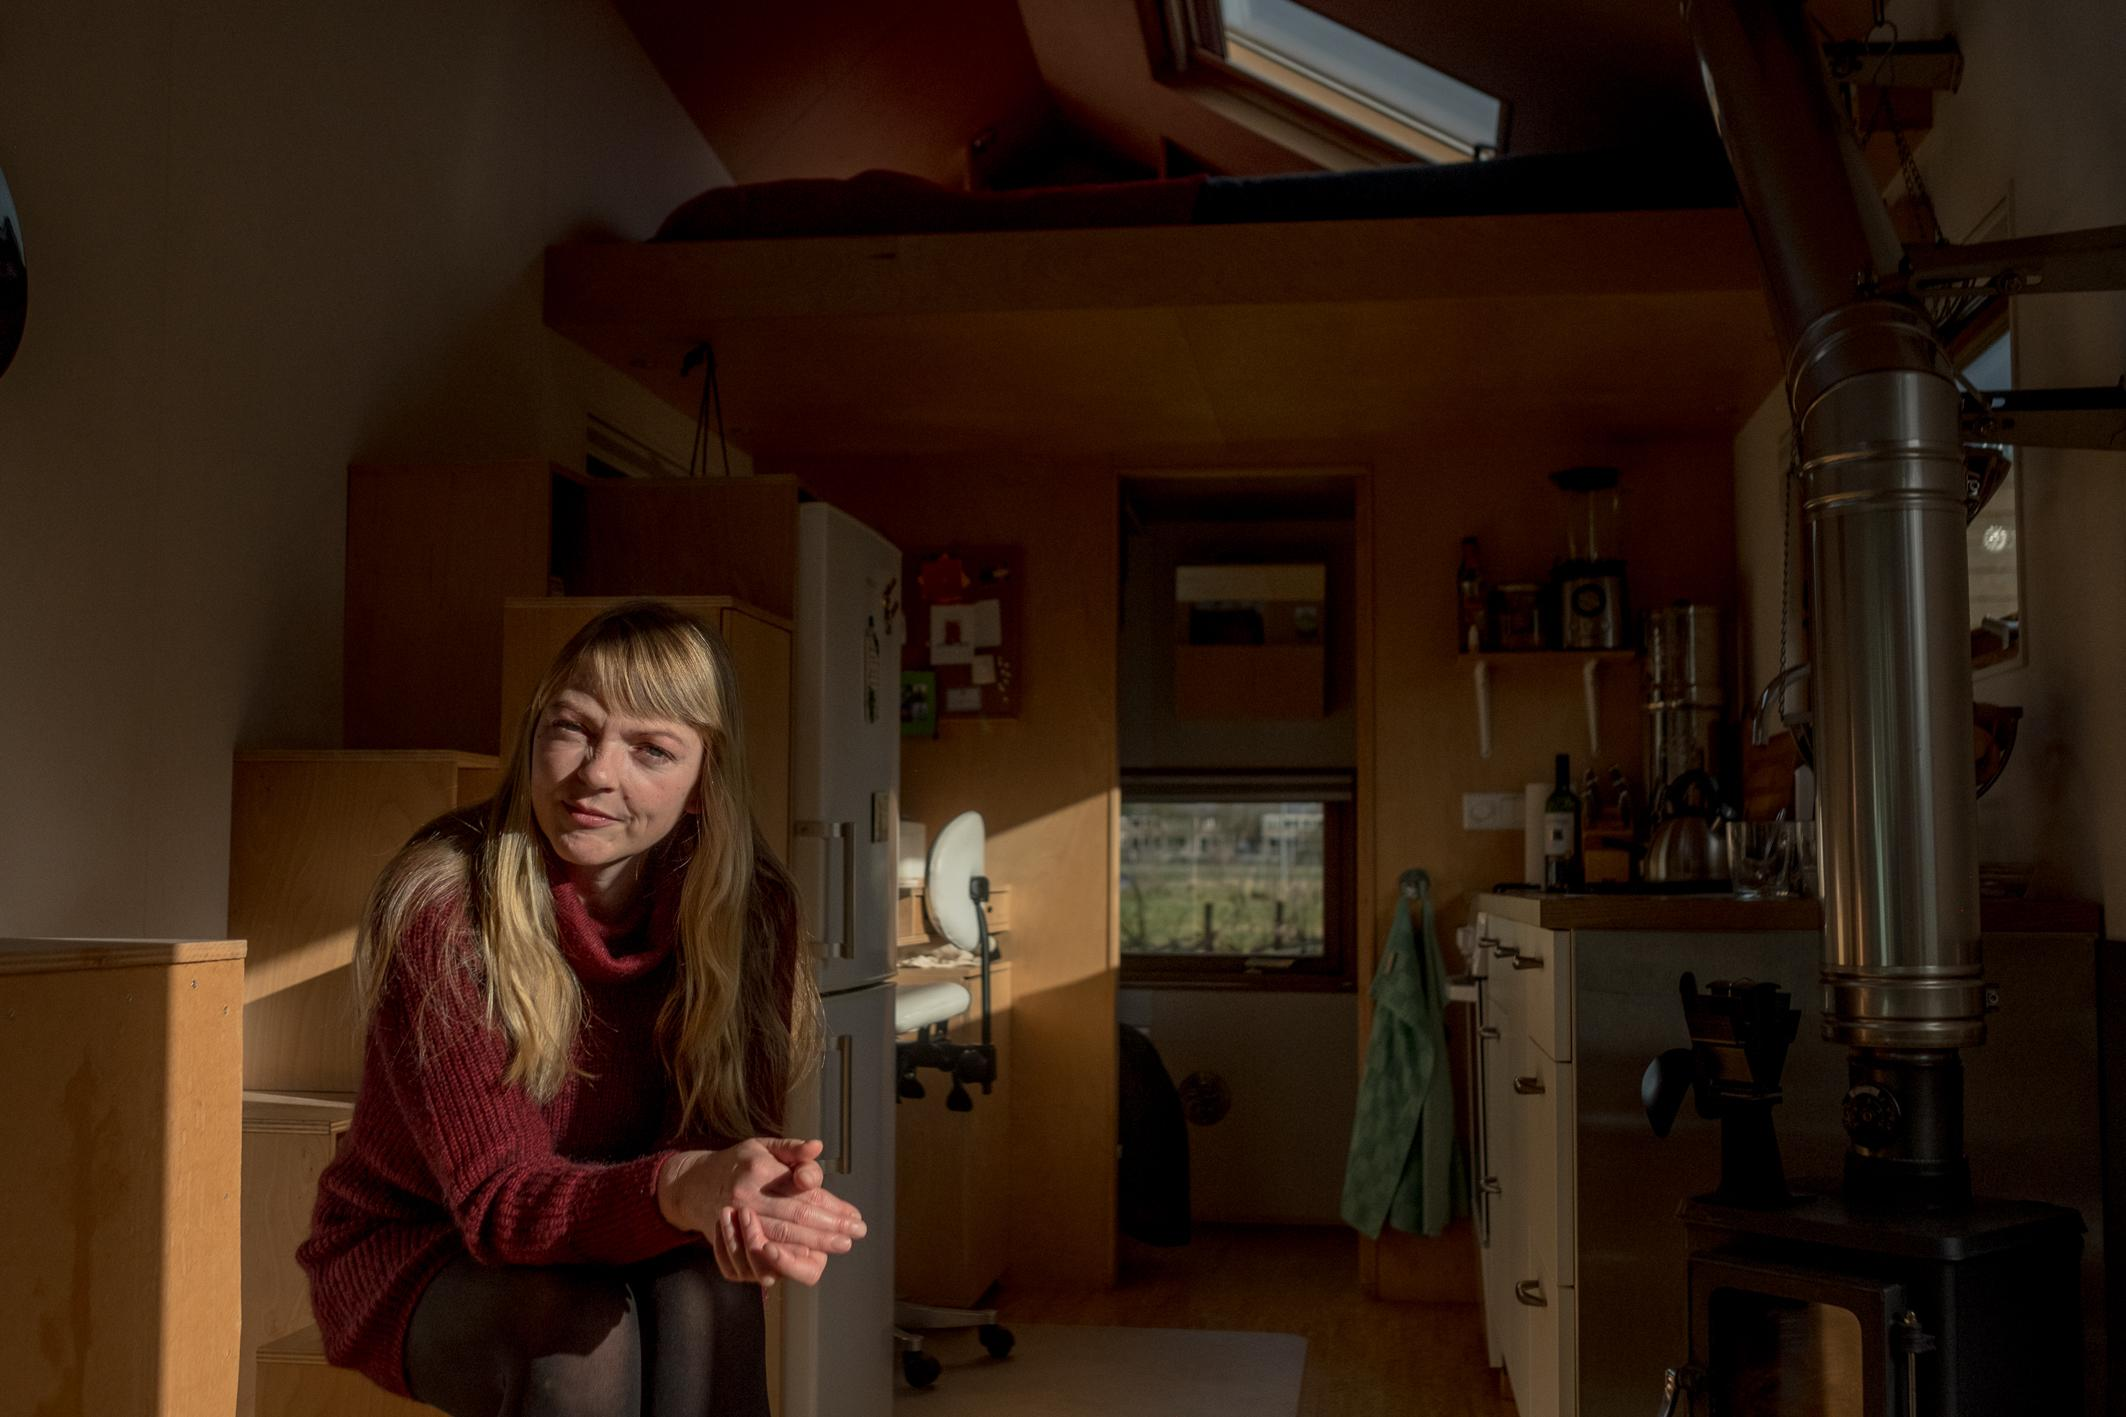 """Marjolein Jonker is a Dutch pioneer and among the first to live in a Tiny House in The Netherlands: """"And look at where we are now? A challenge is the scarcety of ground and to find a permanent place to stay. But in the past few years we have achieved so much: municipalities increasingly take us serious and the movement is still growing. With the Covid-19 crisis I expect tiny house living to become even more attractive. Sustainability and independence of the system are core-values for many."""""""